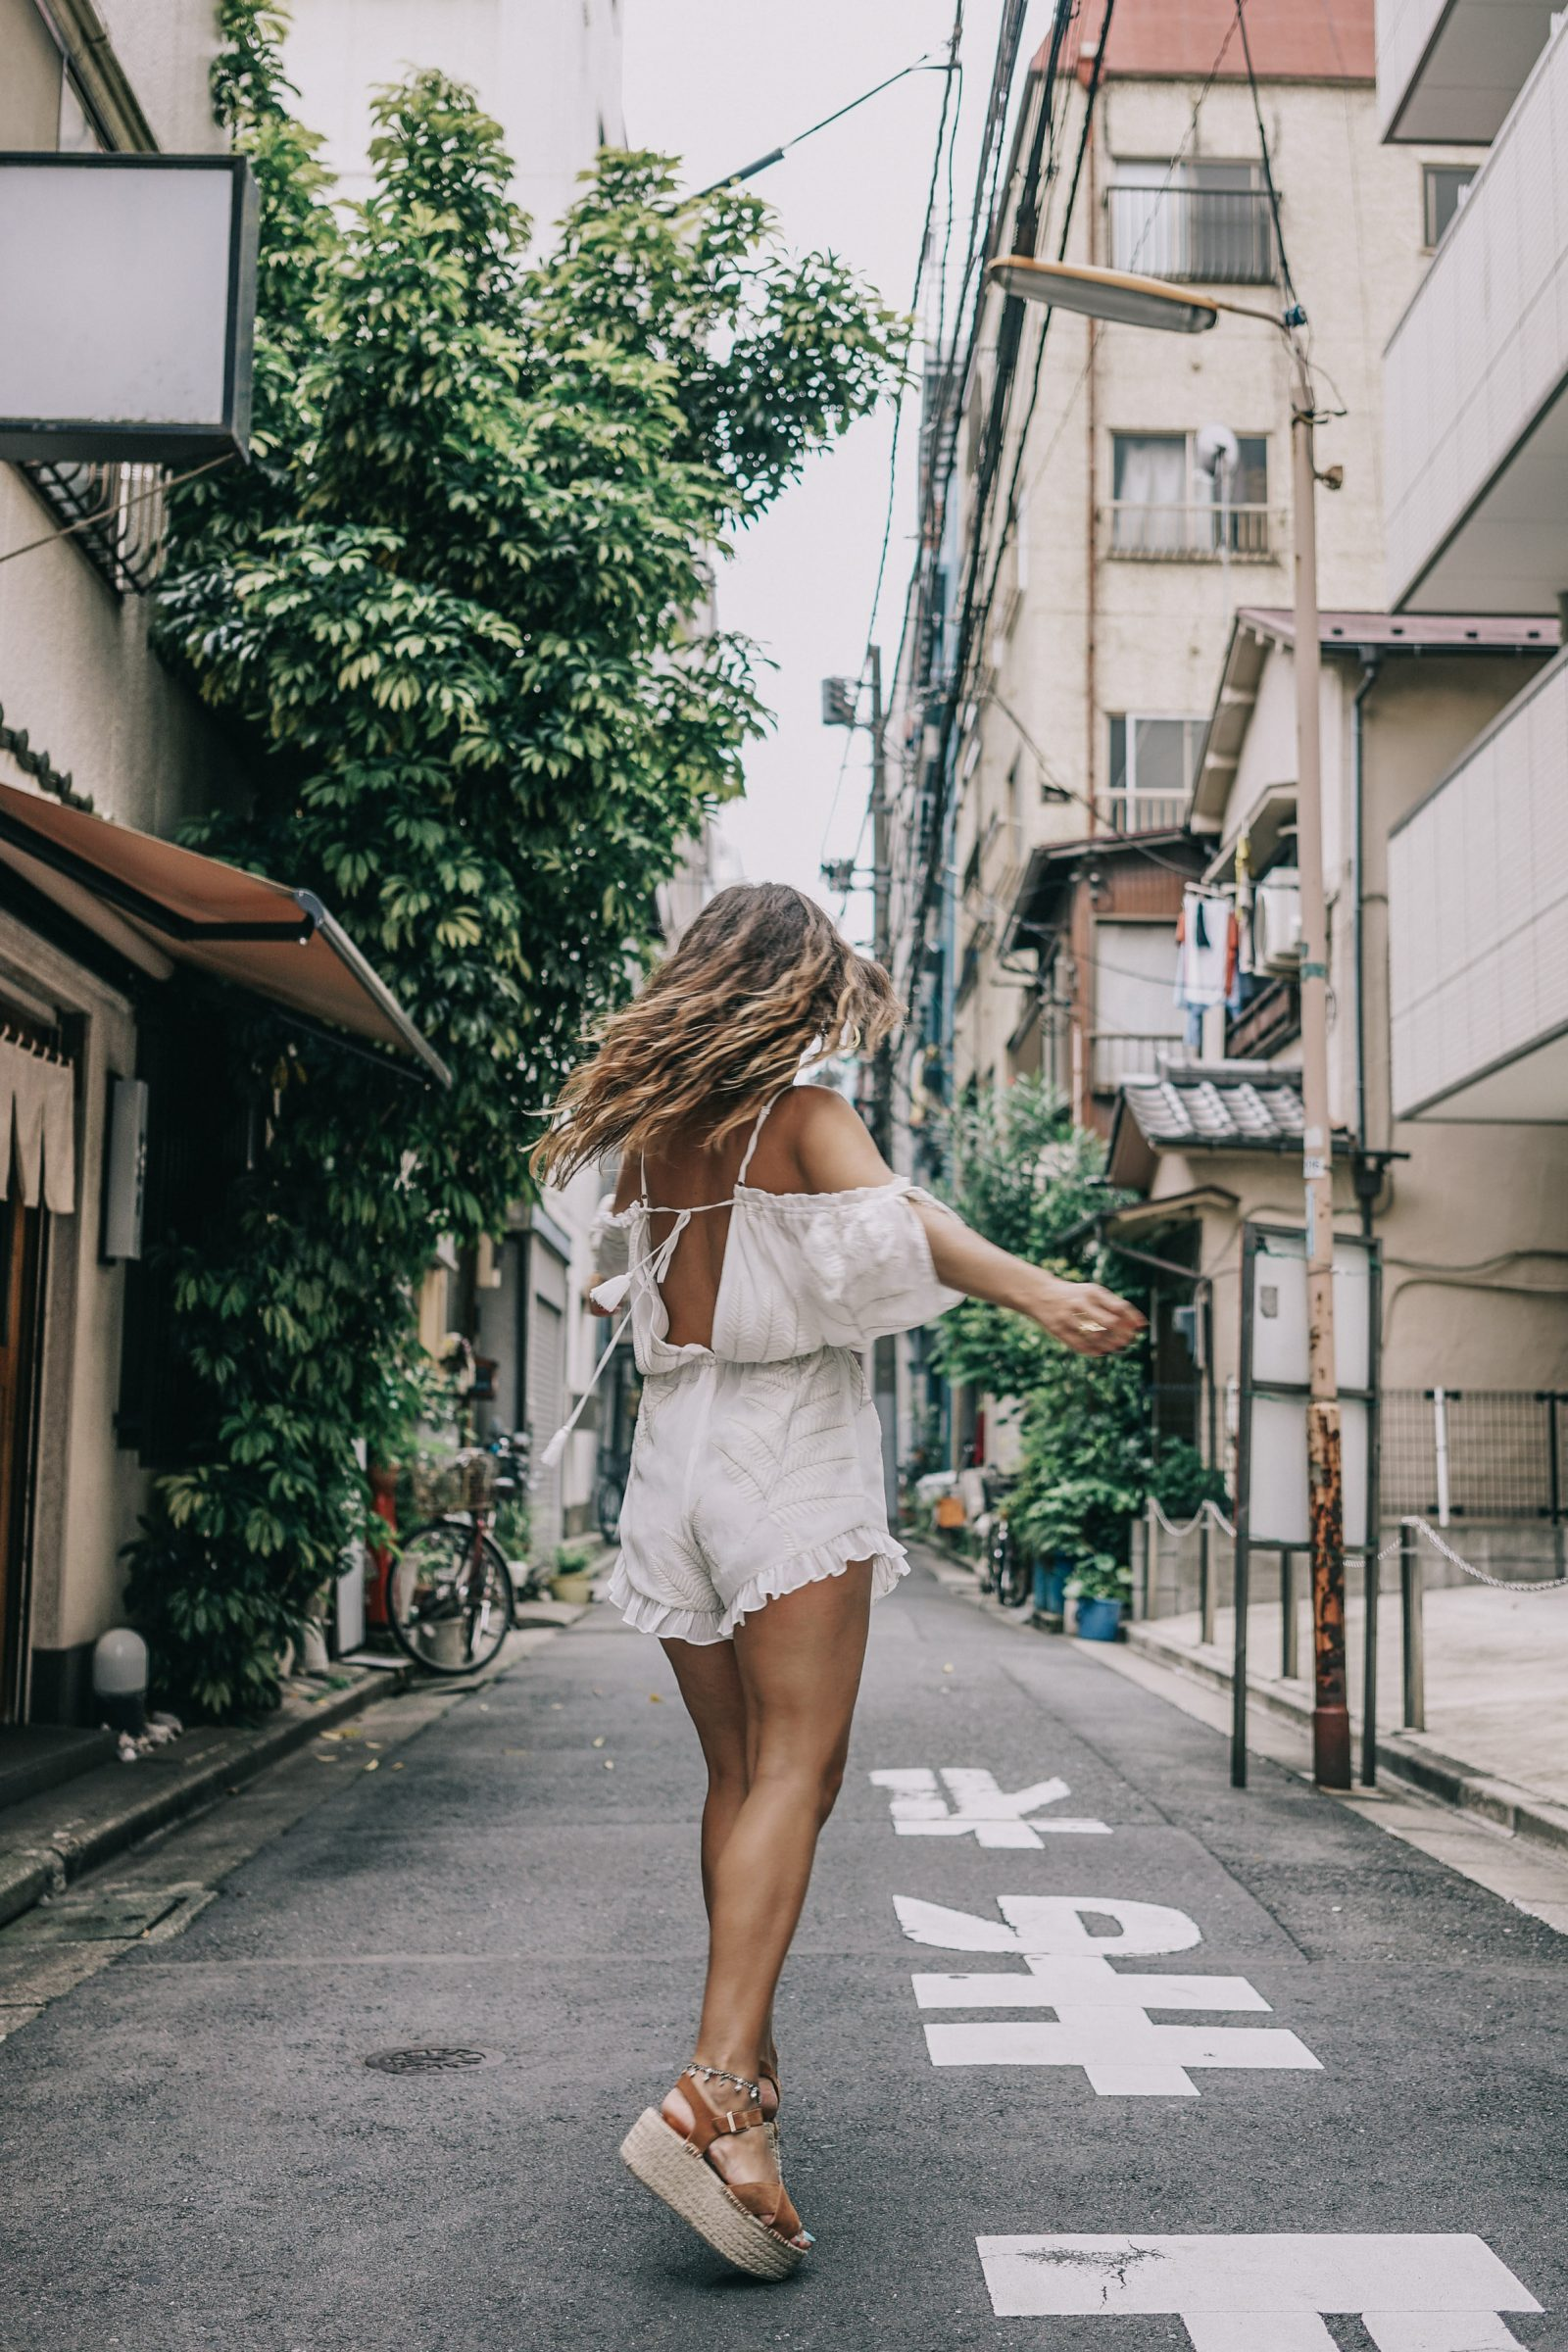 tokyo_travel_guide-outfit-collage_vintage-street_style-lovers_and_friends_jumpsuit-white_outfit-espadrilles-backpack-levis_denim_jacket-akihabara-79